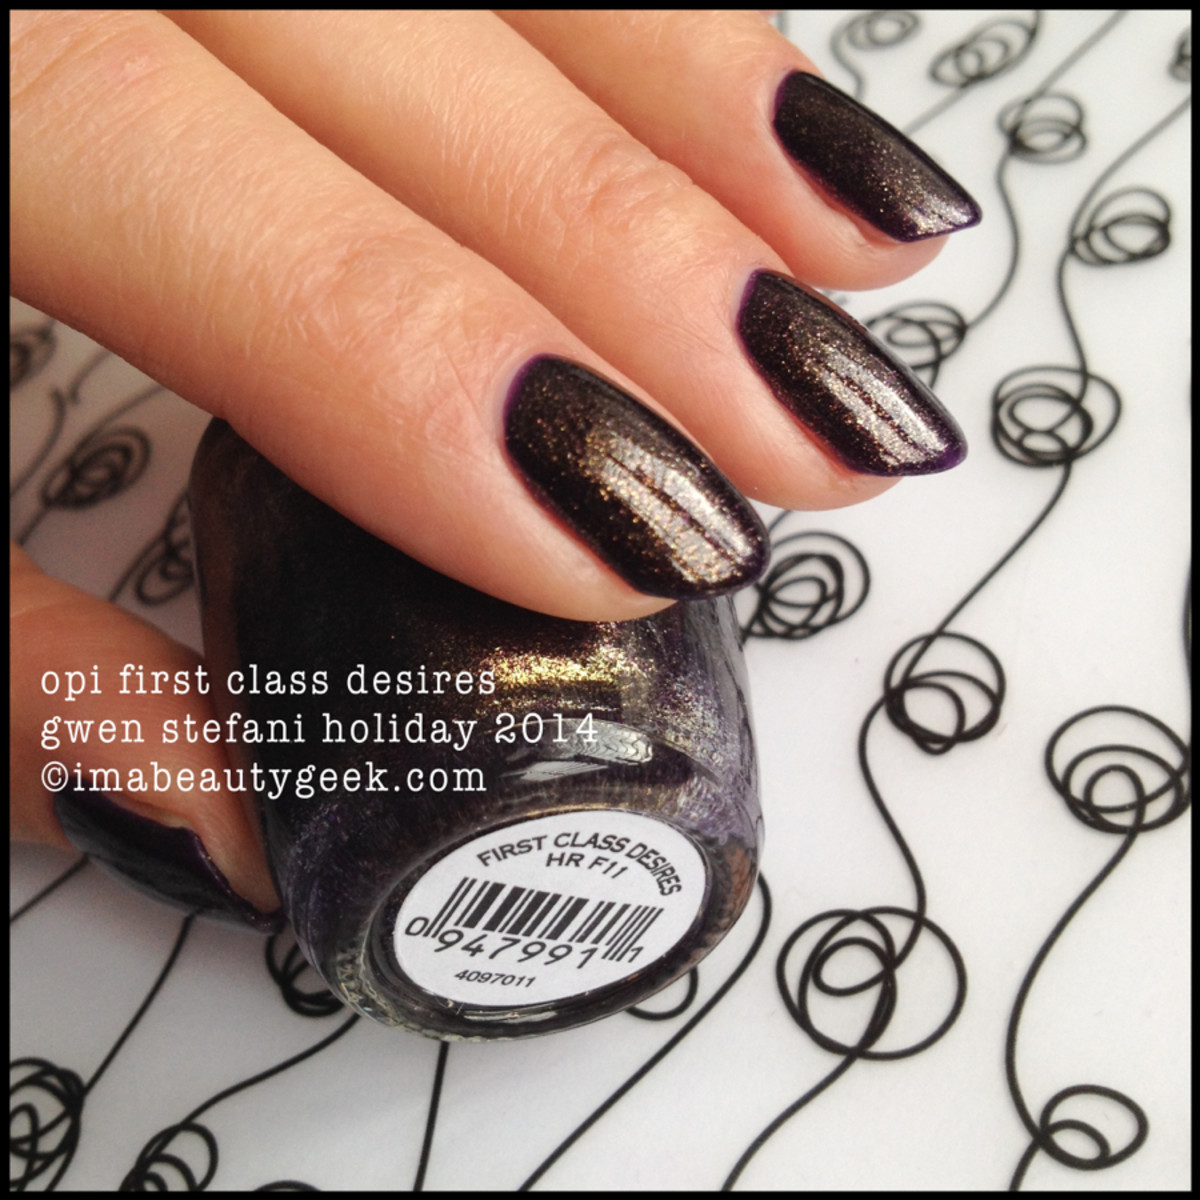 OPI First Class Desires Gwen Stefani Holiday 2014